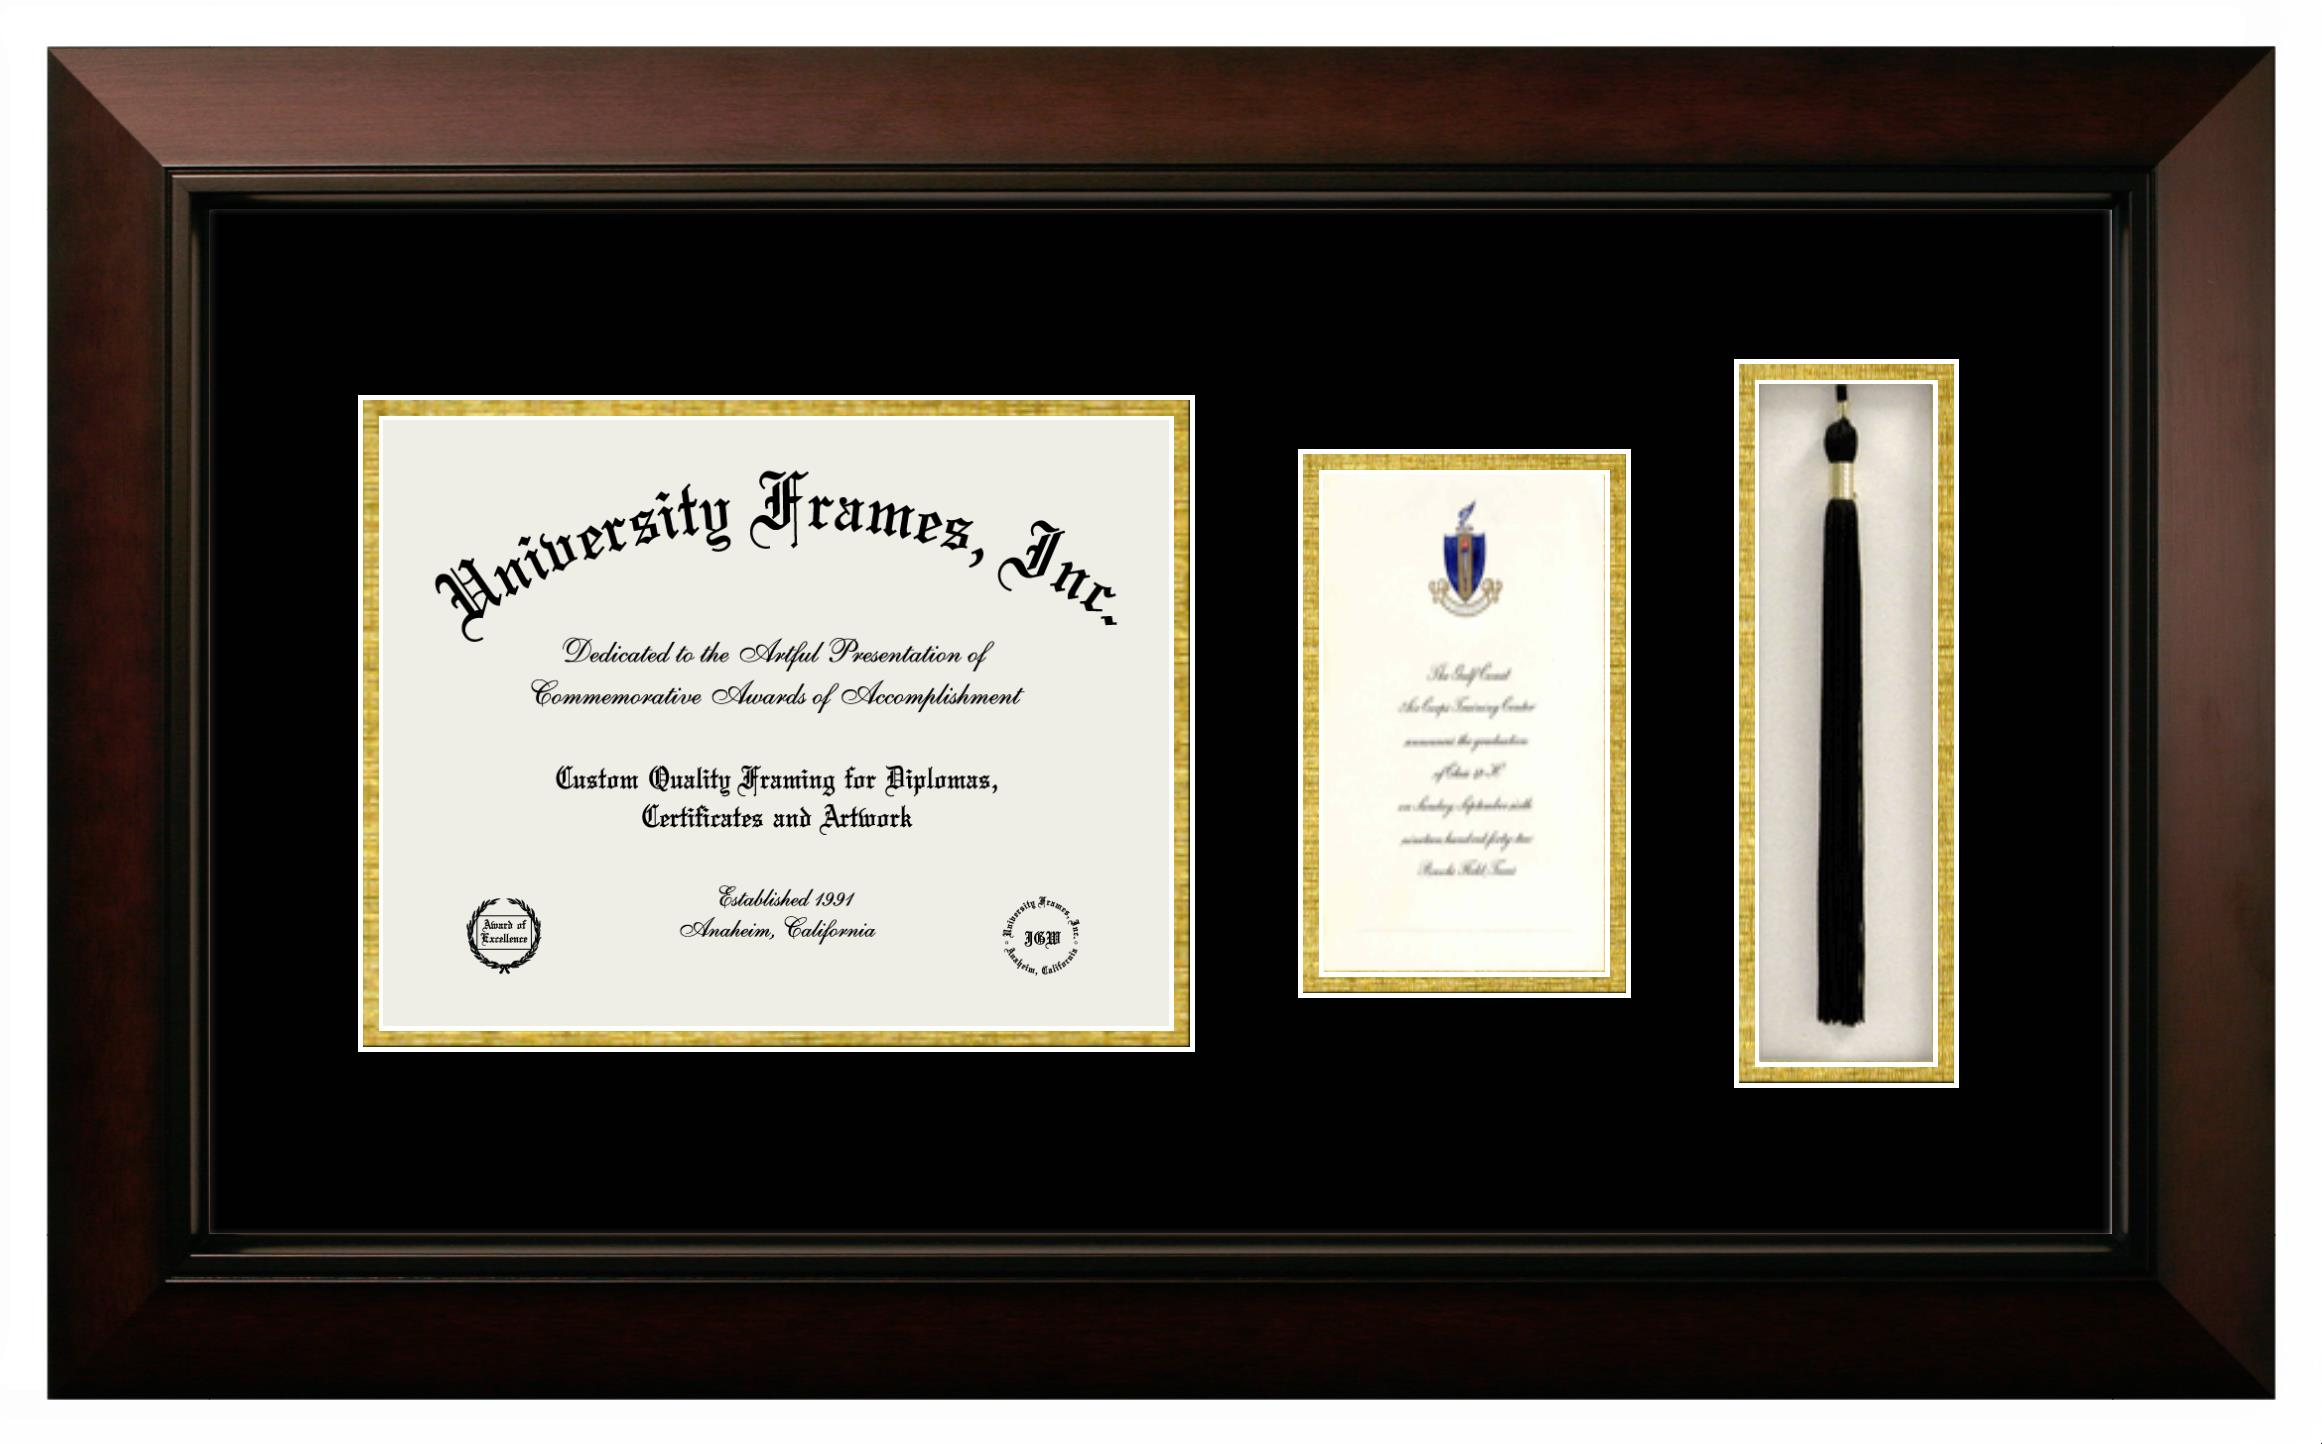 Warner Pacific College Diploma With Announcement Tassel Box Frame In Legacy Black Cherry With Black Gold Mats